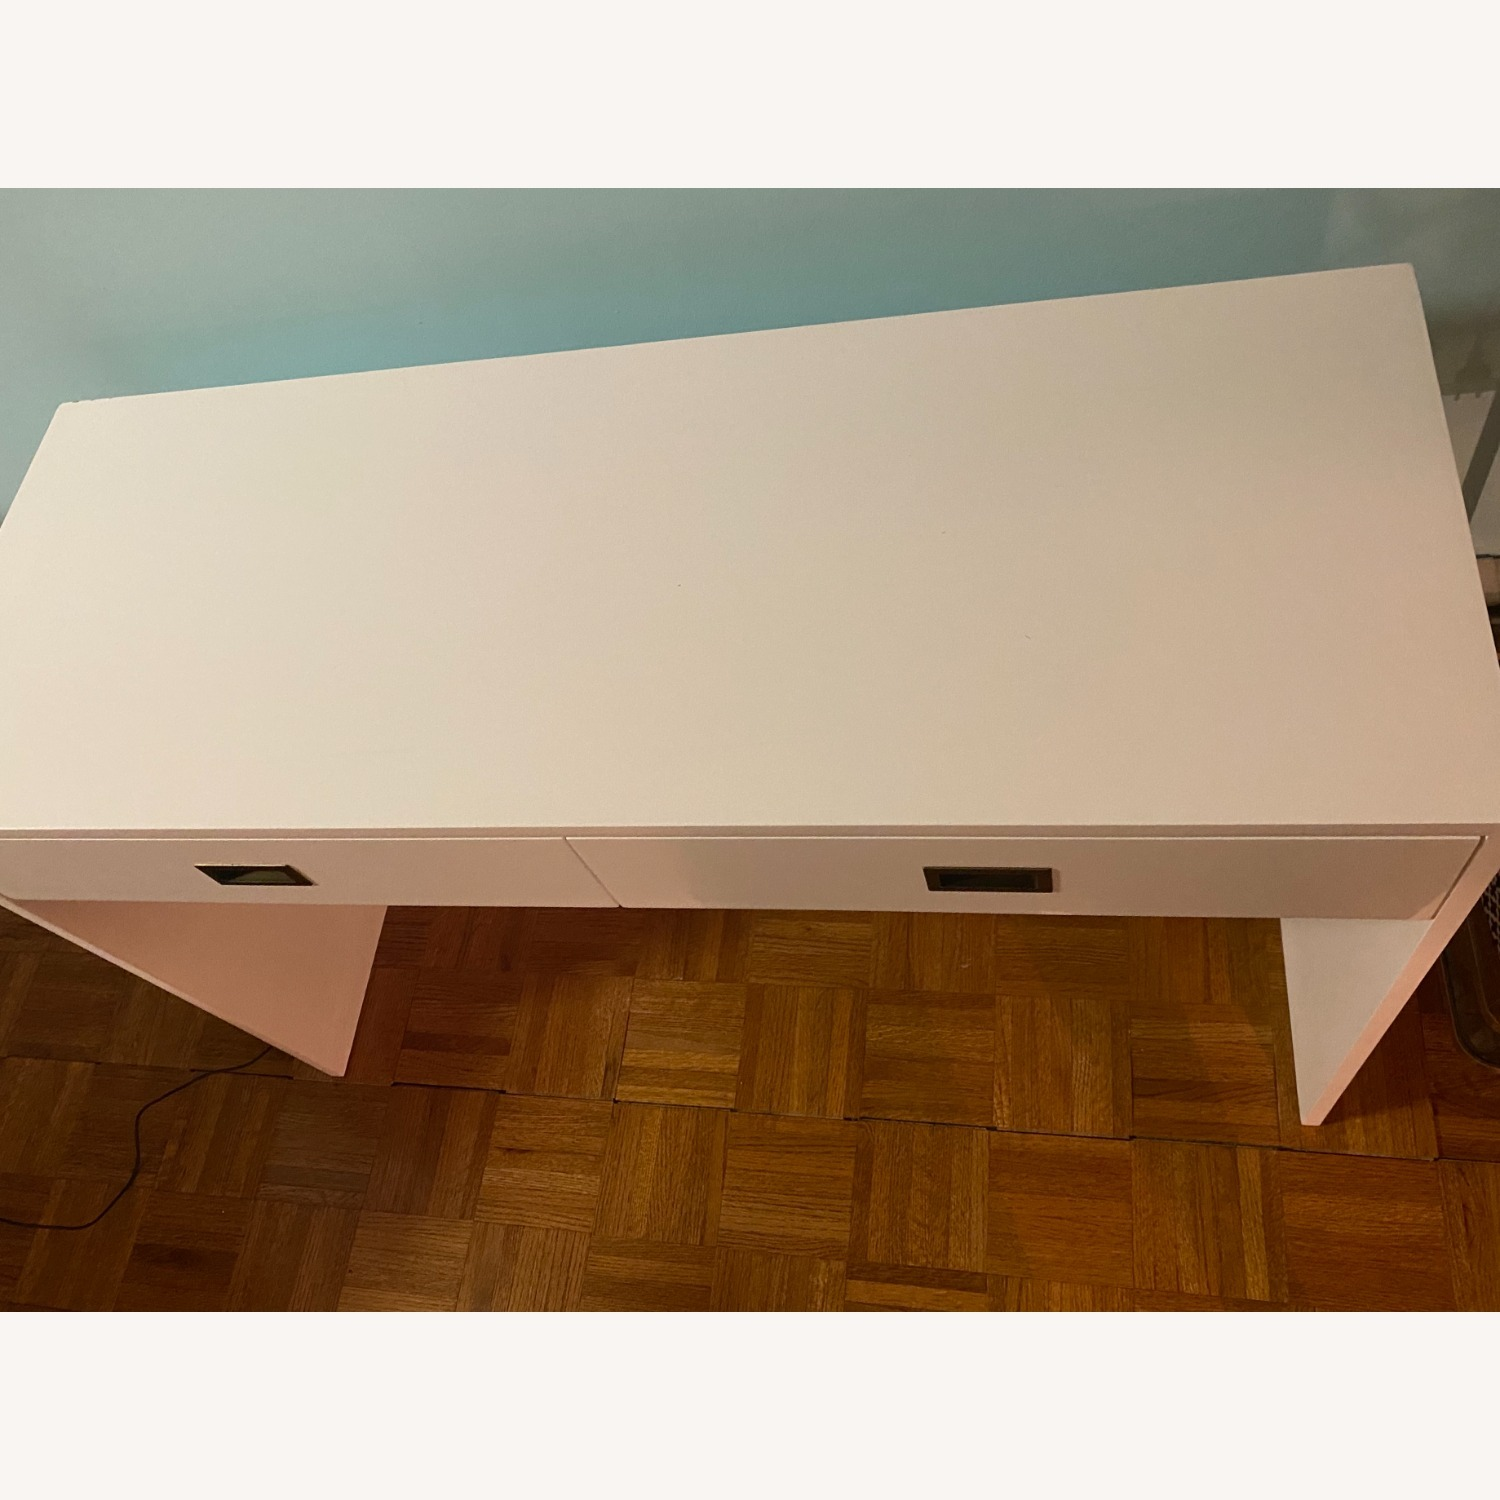 Restoration Hardware Avalon Desk in White - image-7